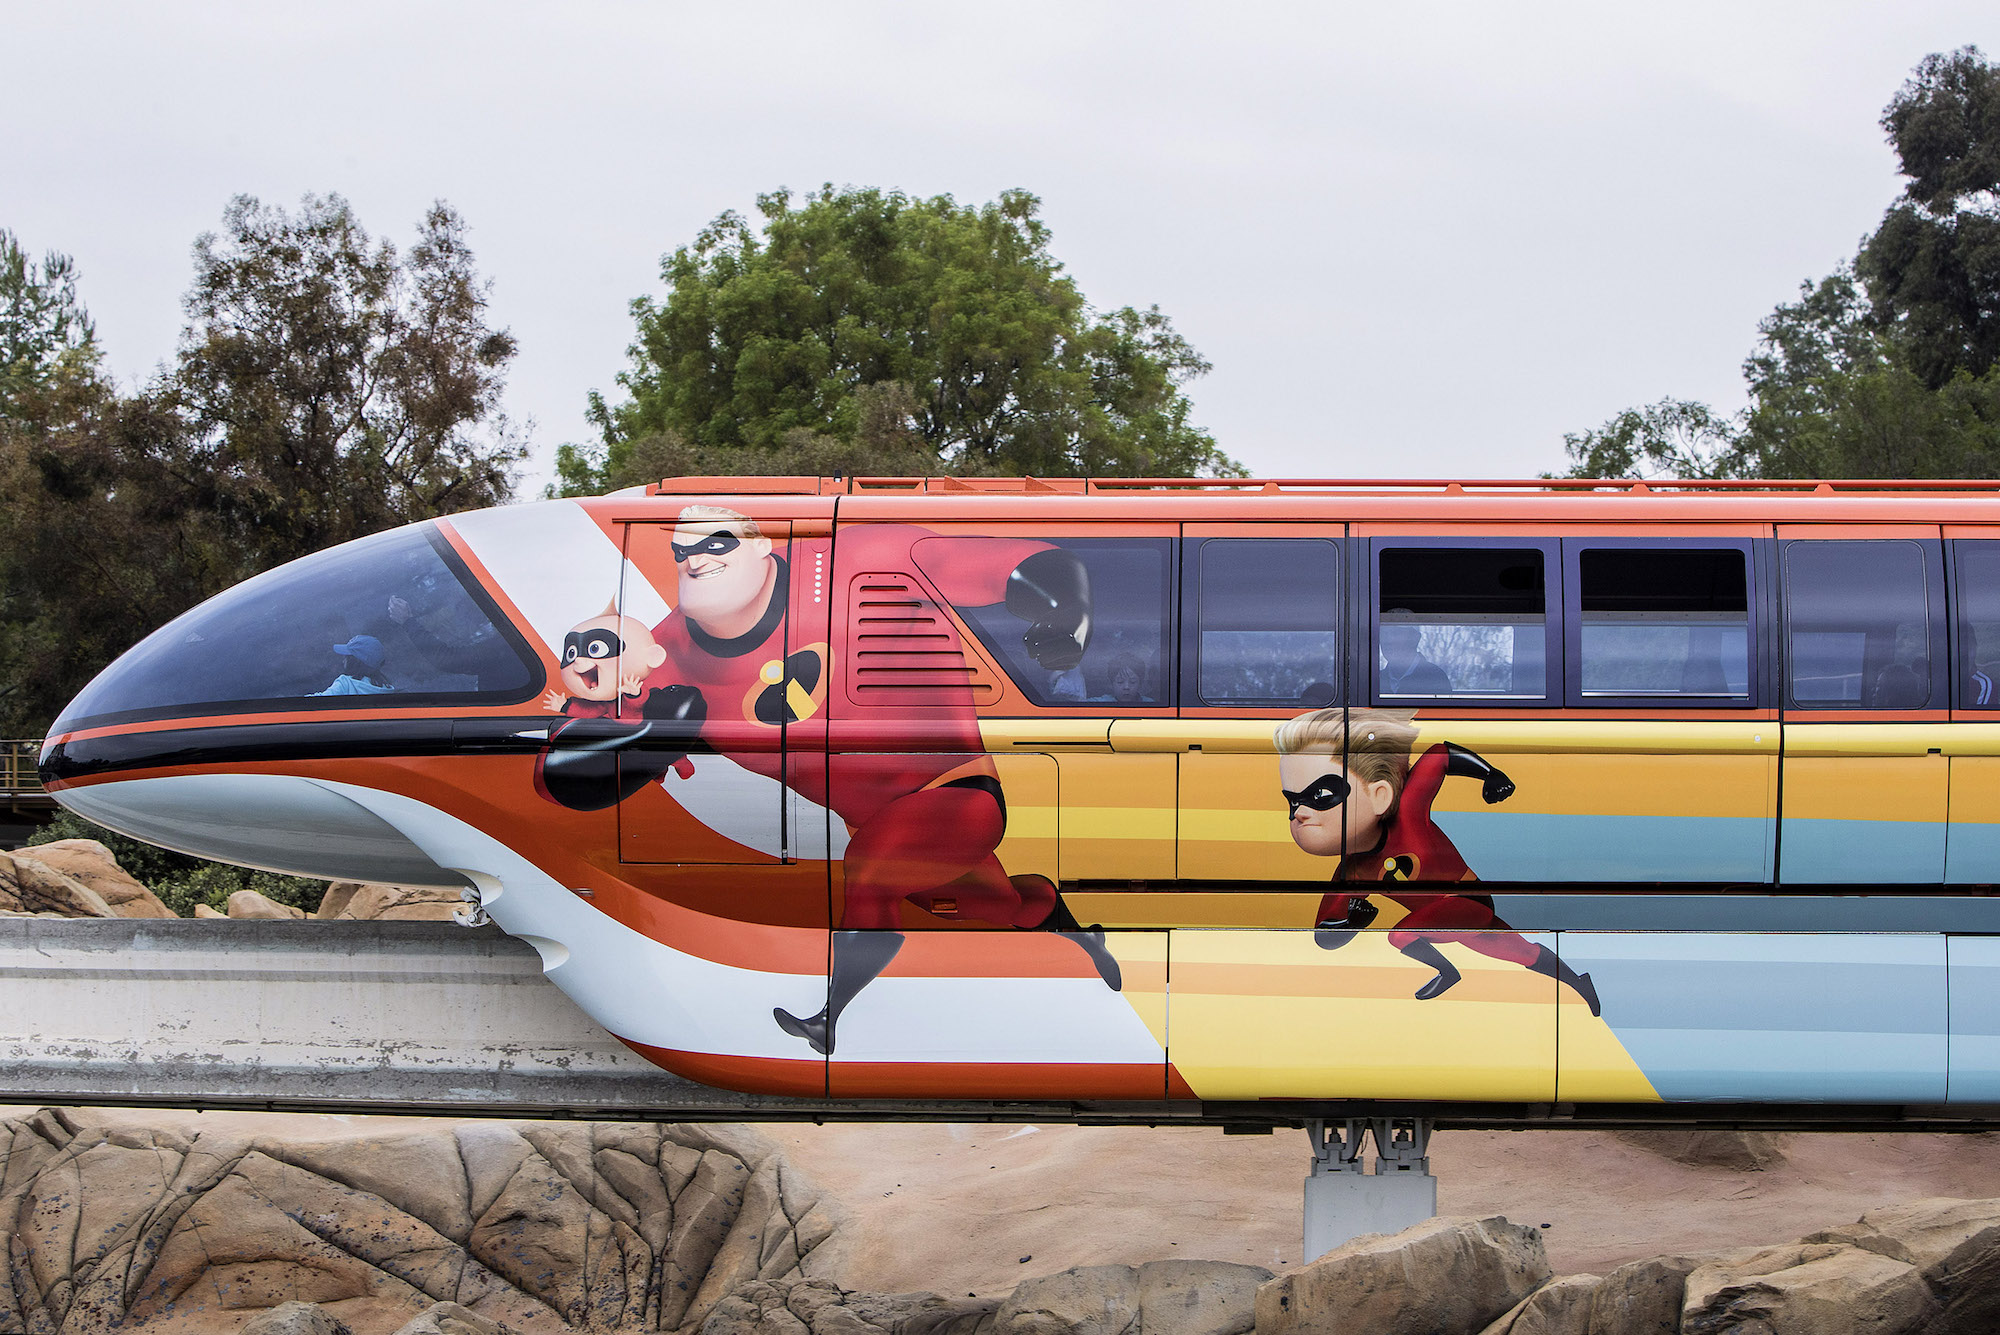 Pixar Fest Monorail - Incredibles 2 theme